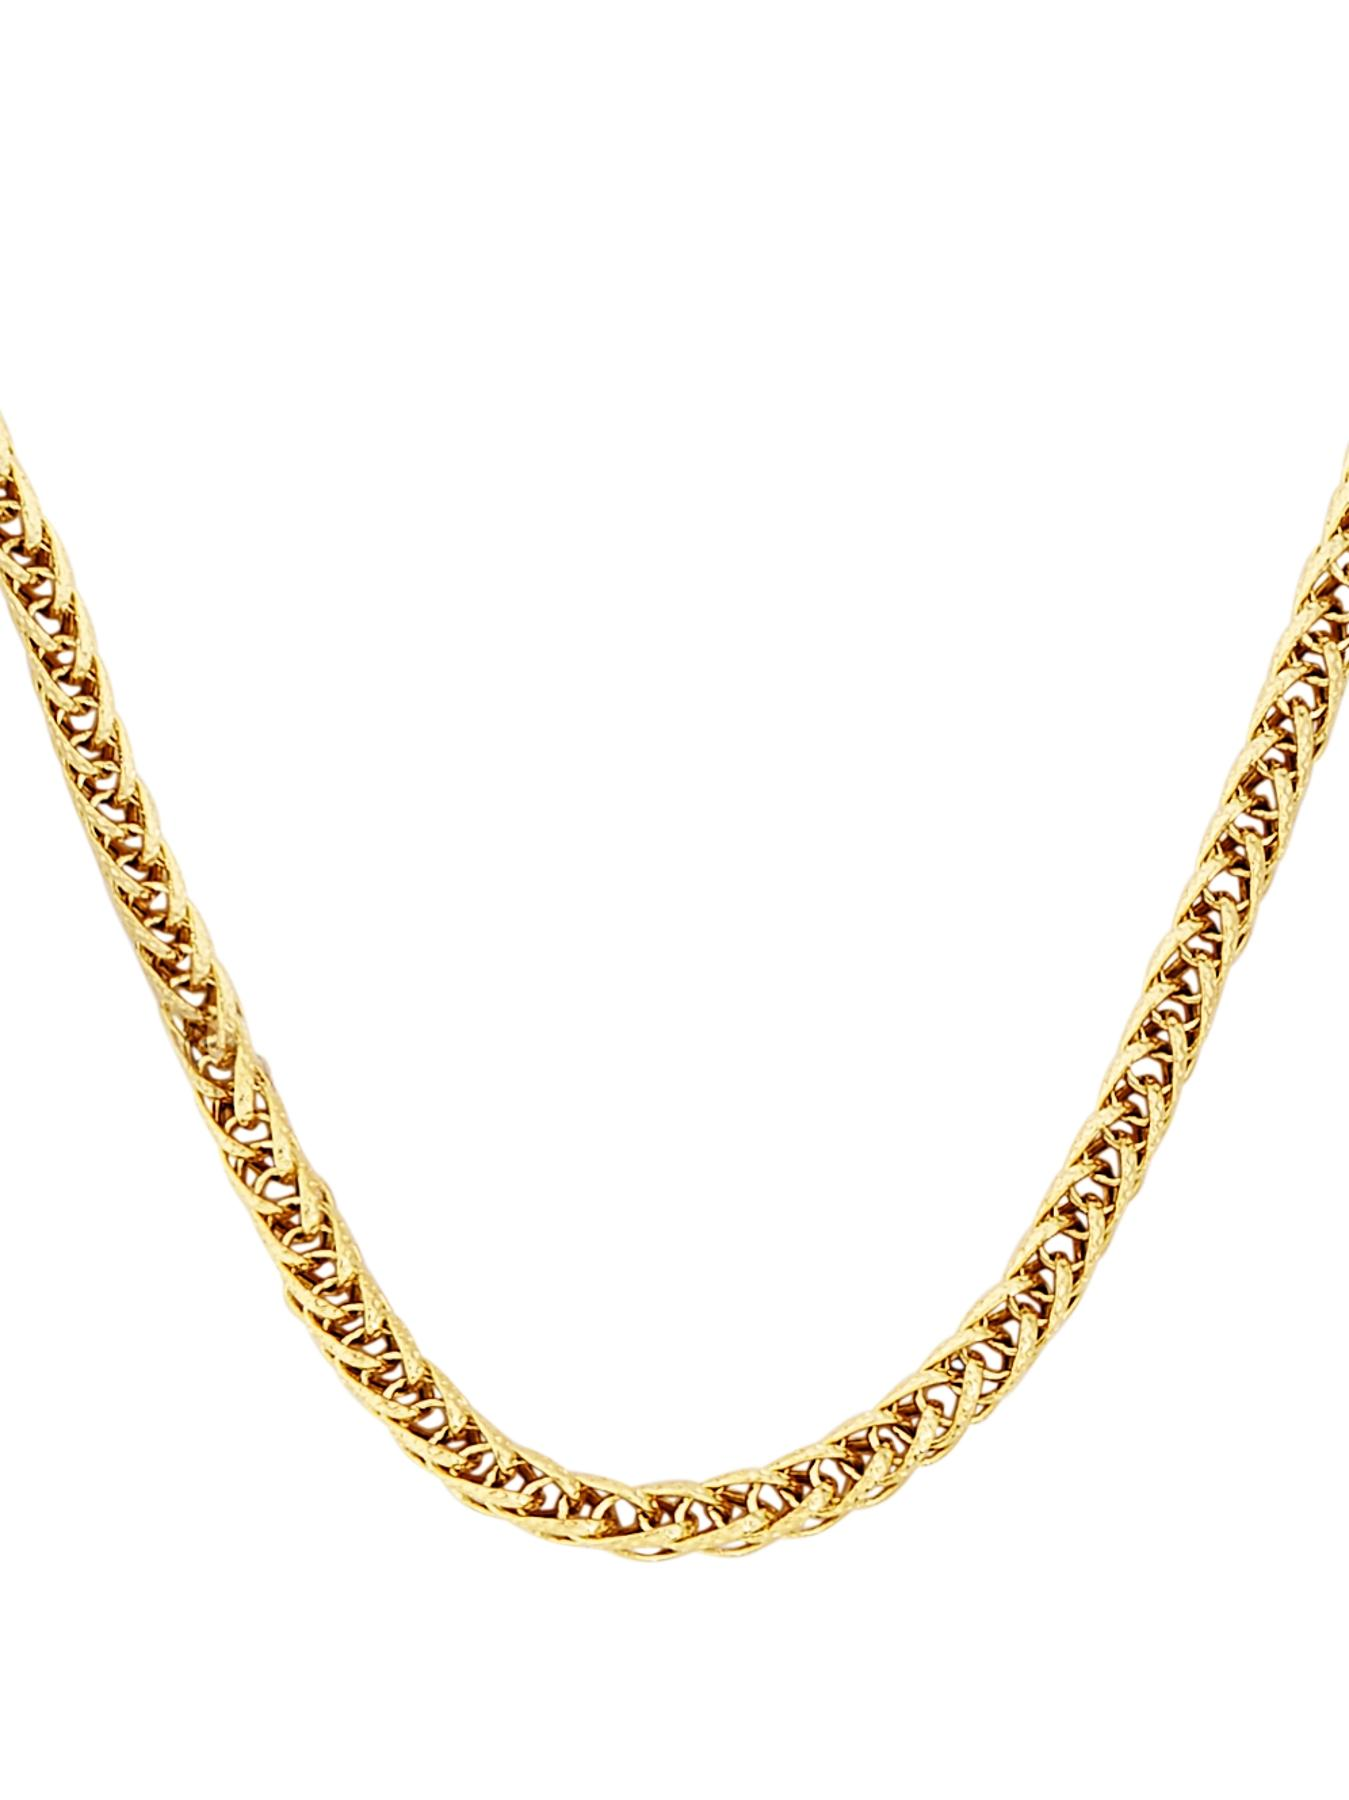 9 Carat Yellow Gold Fancy Wheatchain Chain.